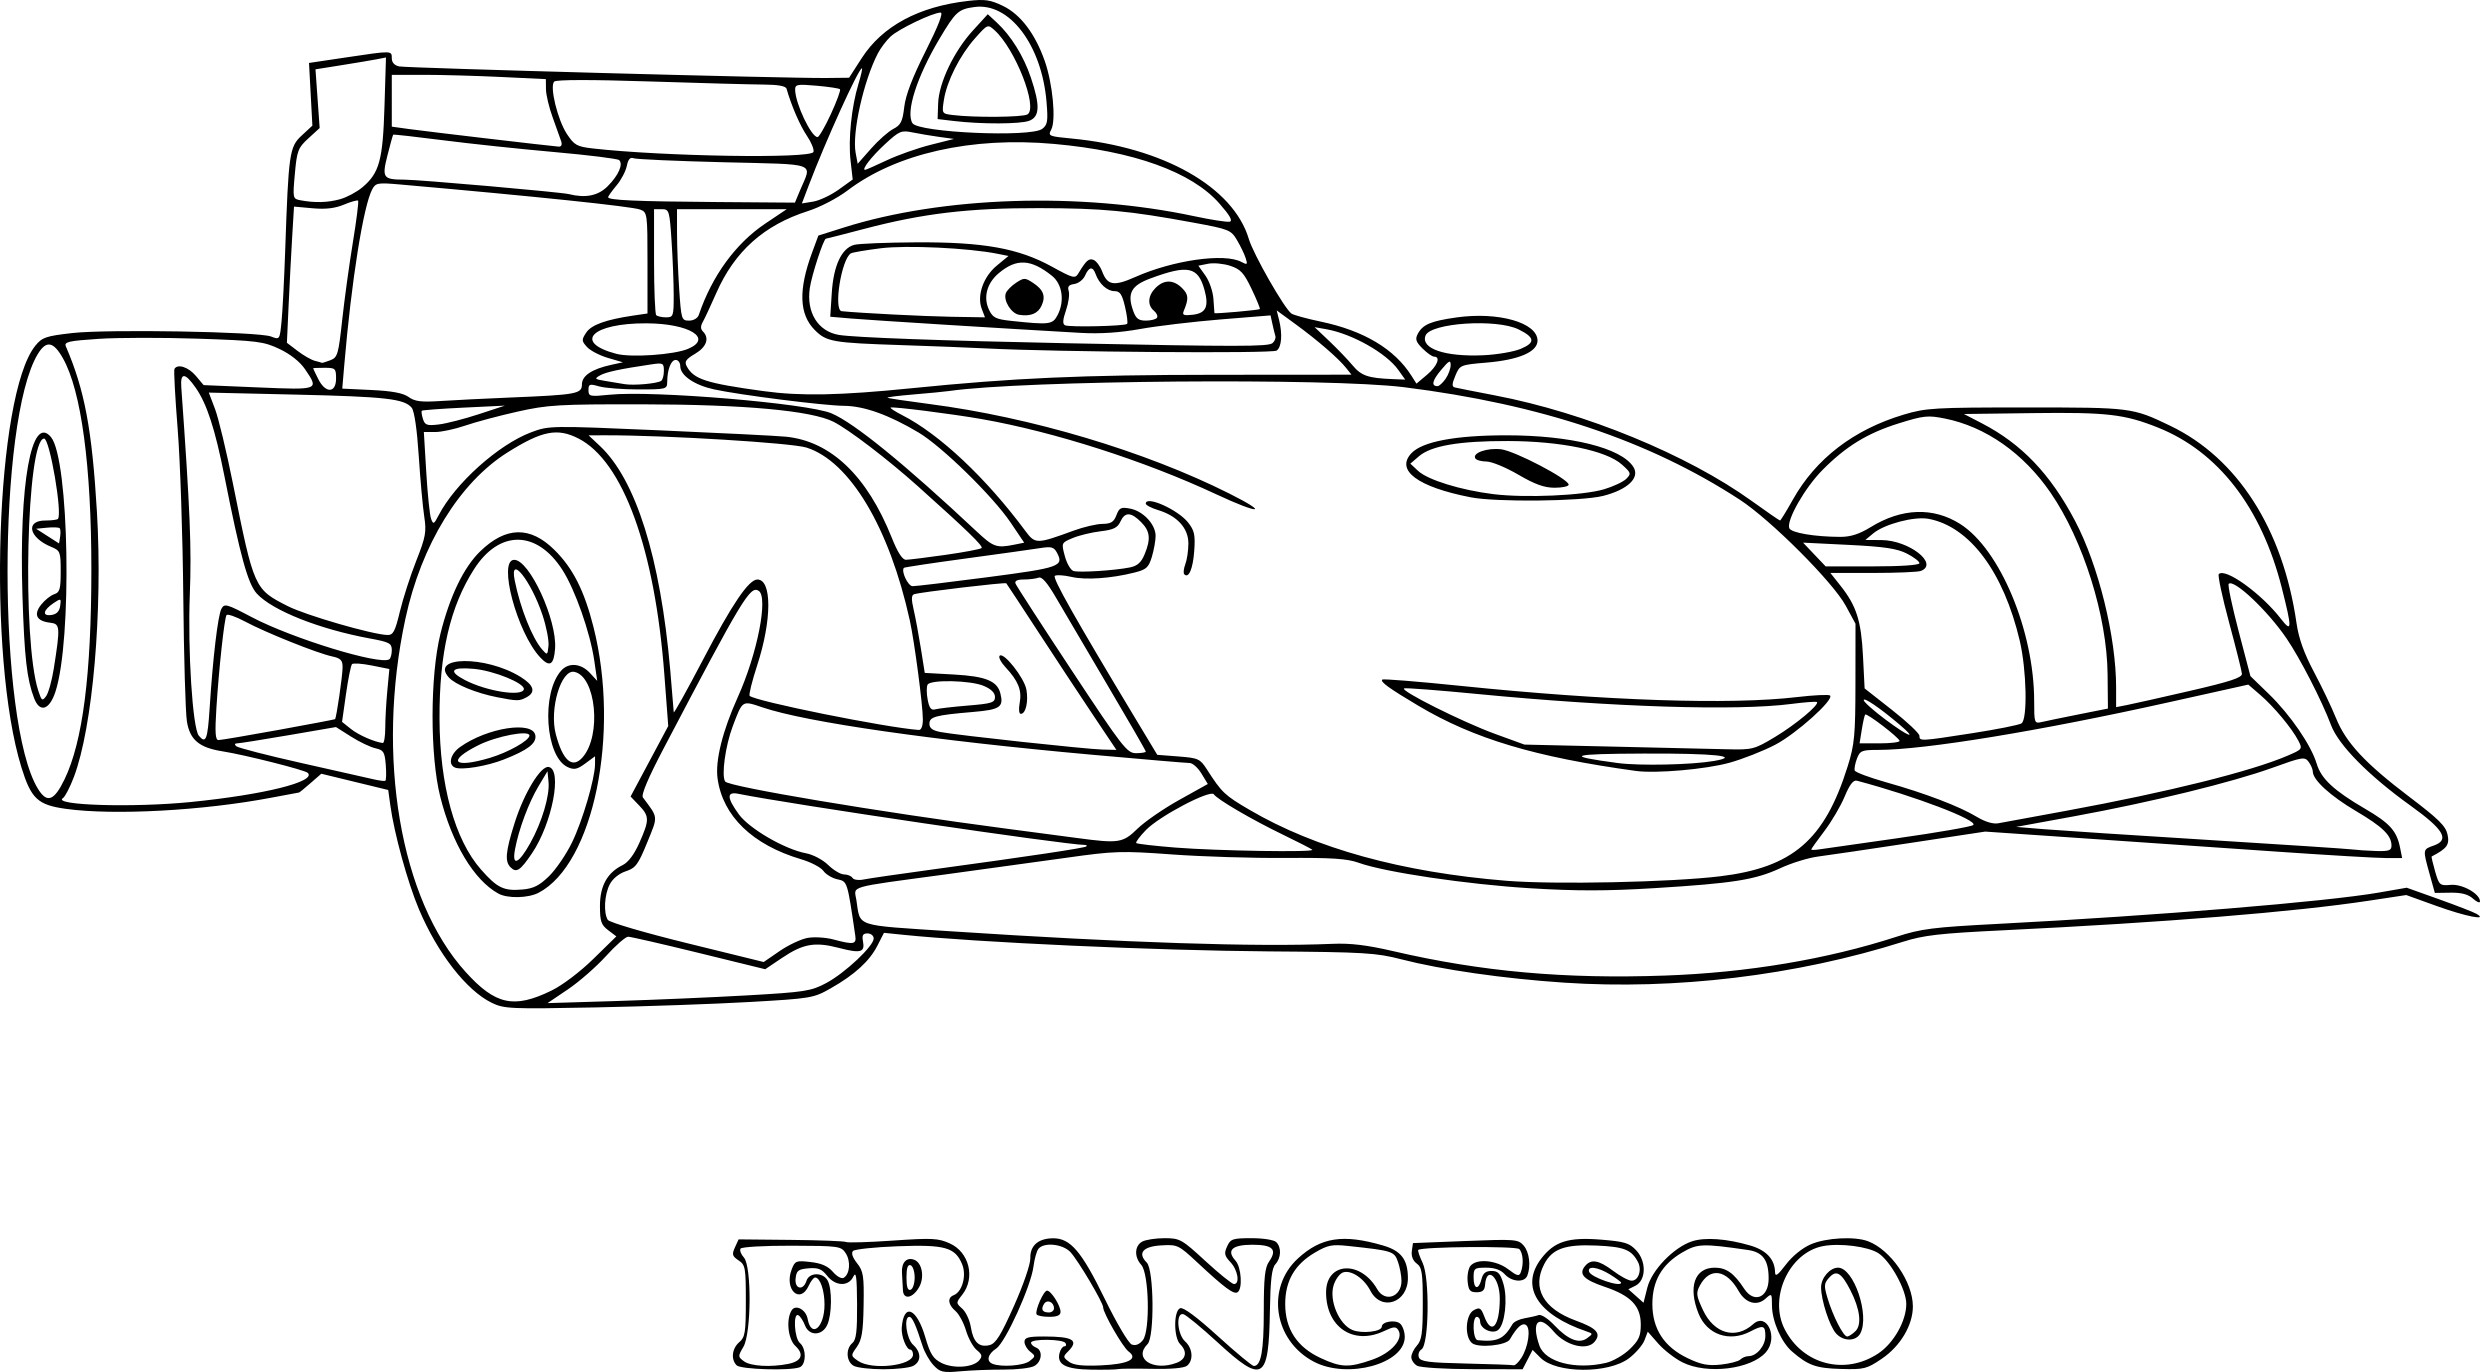 Coloriage cars francesco imprimer - Coloriage cars image ...